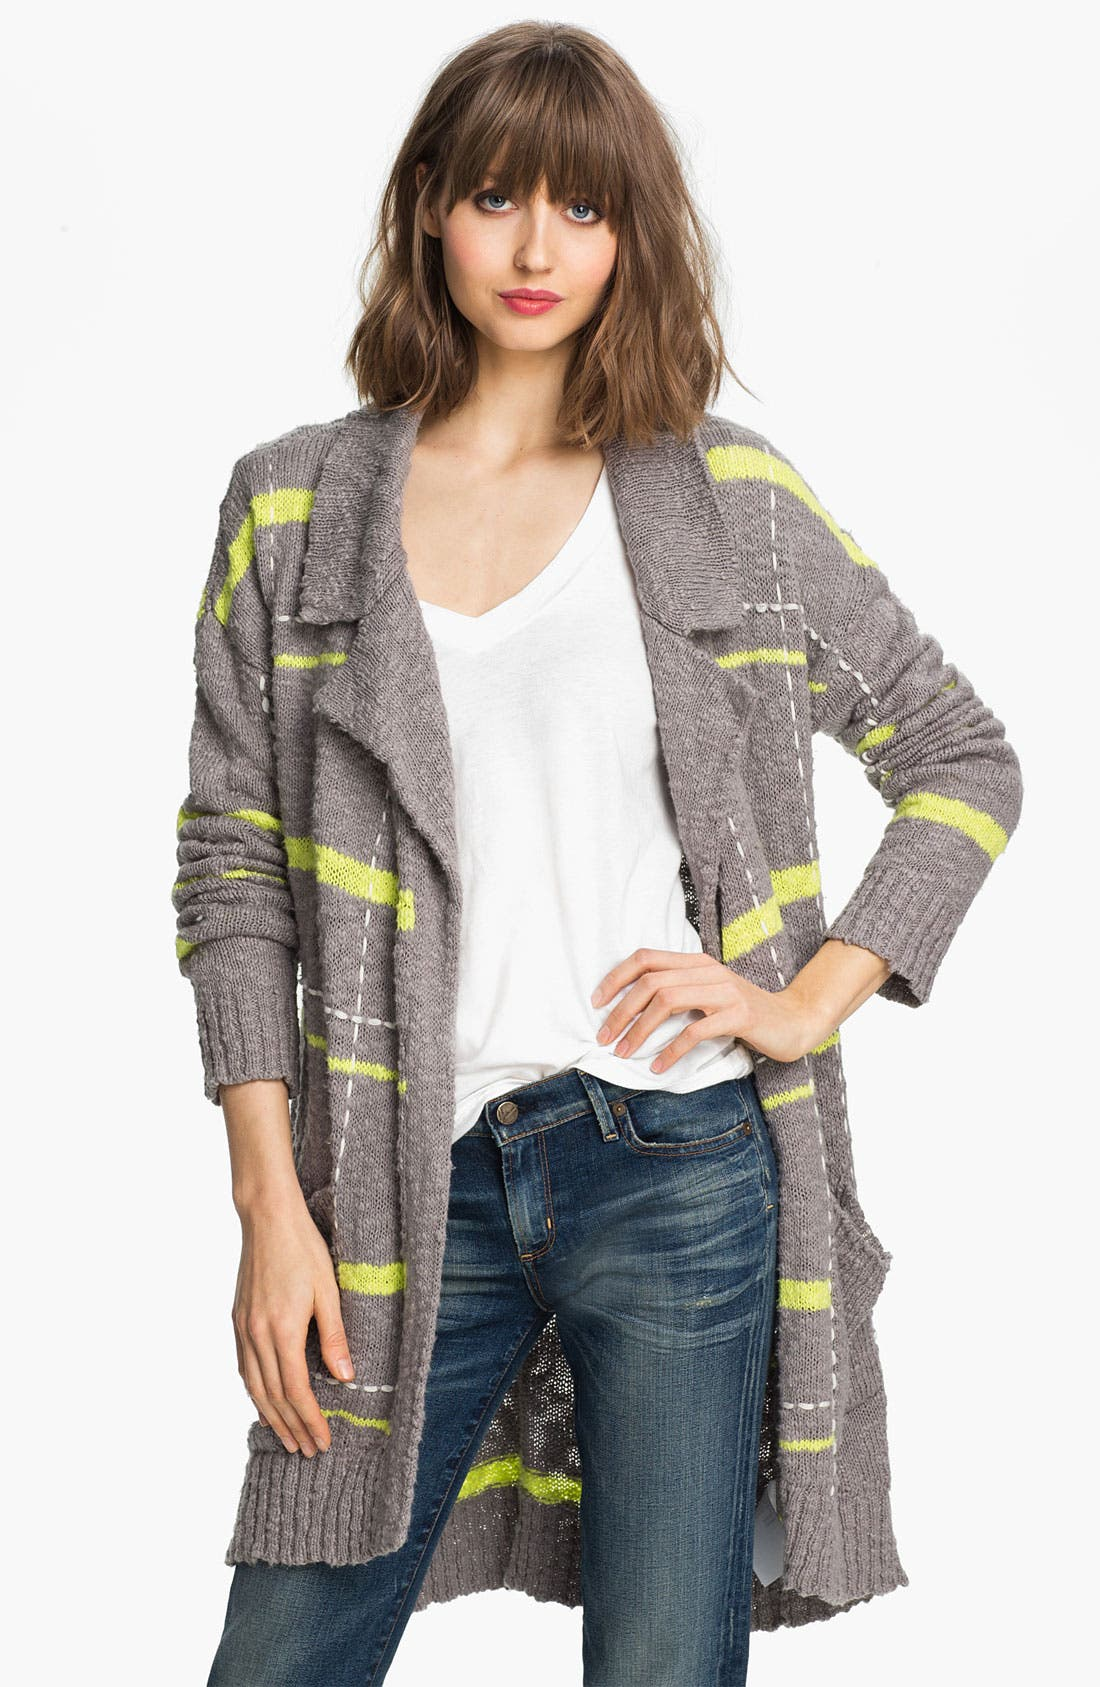 Alternate Image 1 Selected - Splendid 'Beach' Plaid Oversized Cardigan